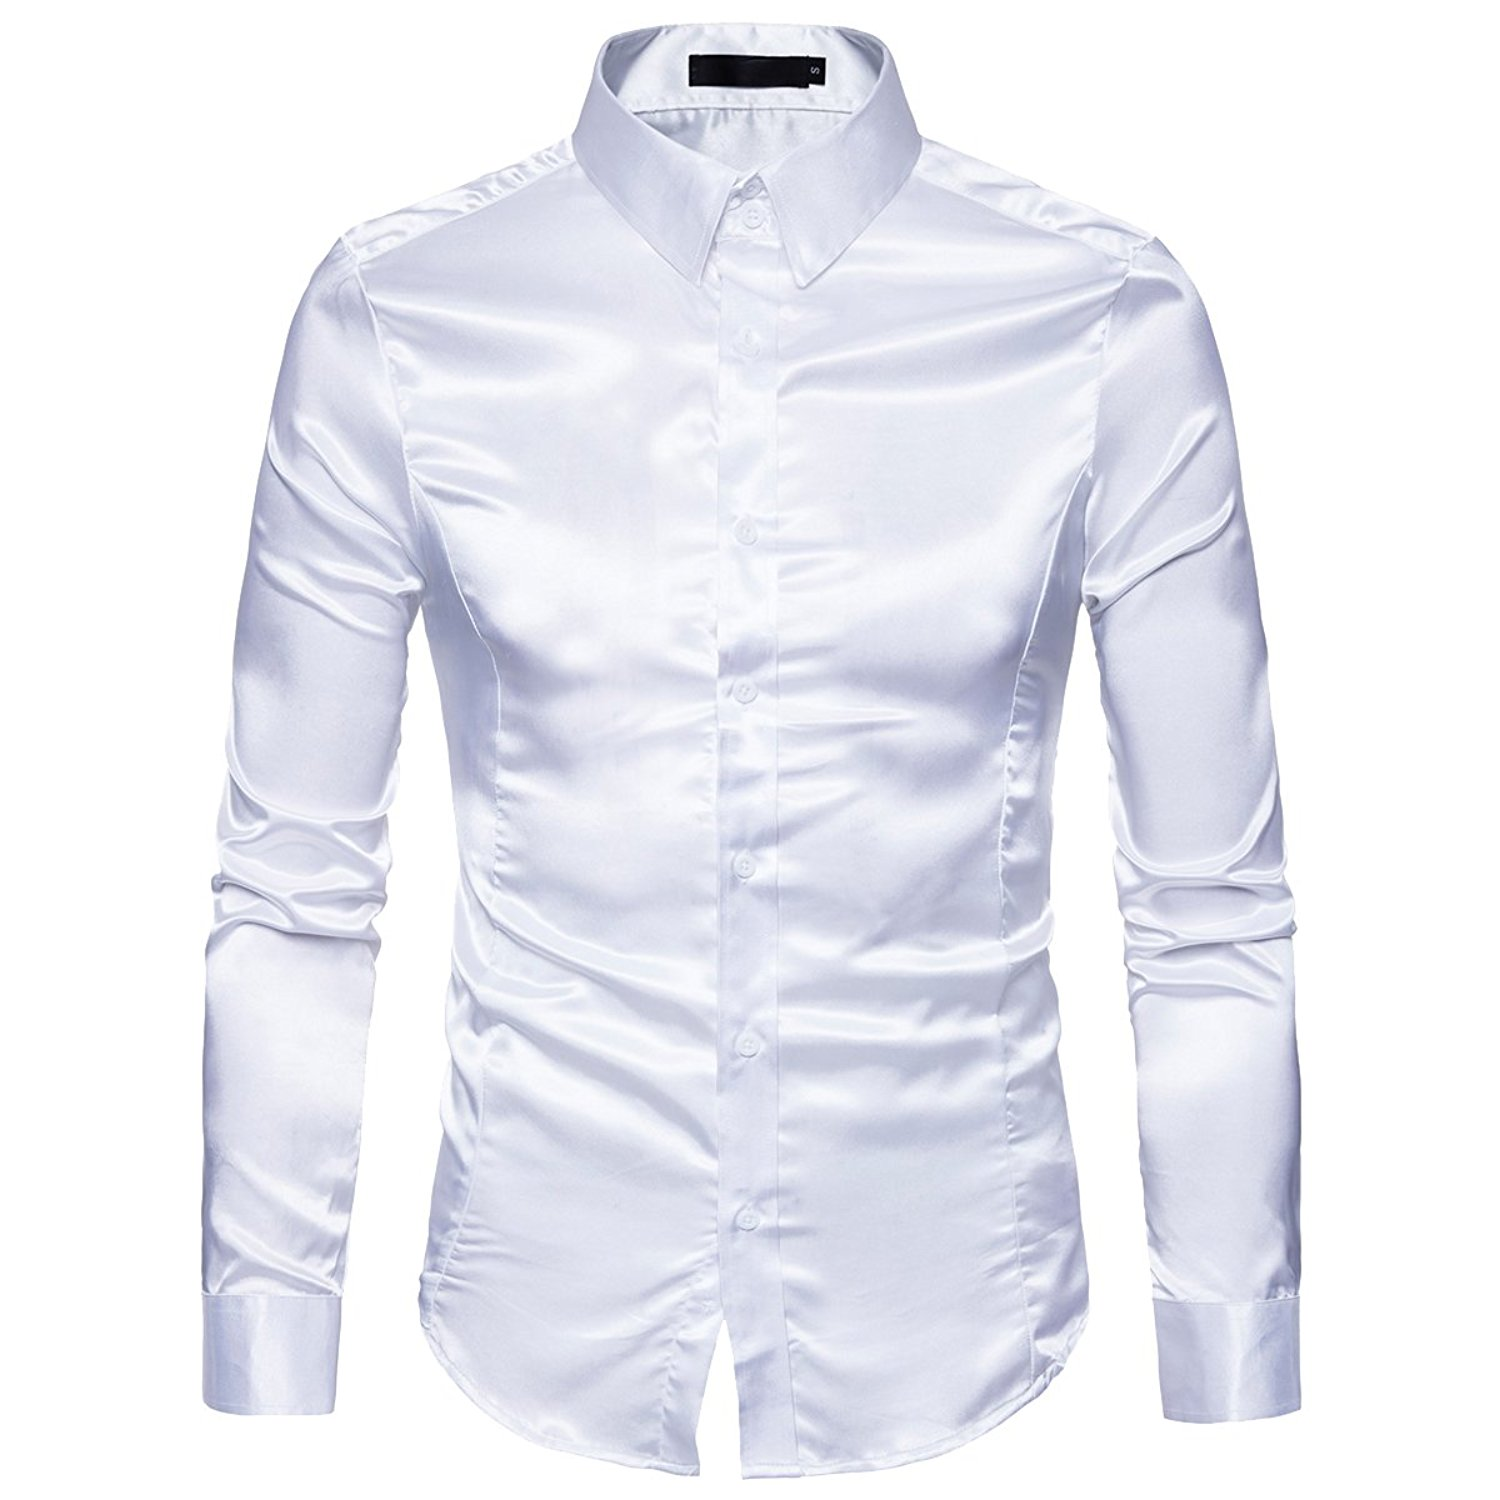 b867d9d80d5301 Get Quotations · Cottory Men's Night Club Style Satin Weave Pure Color  Button Down Shirts